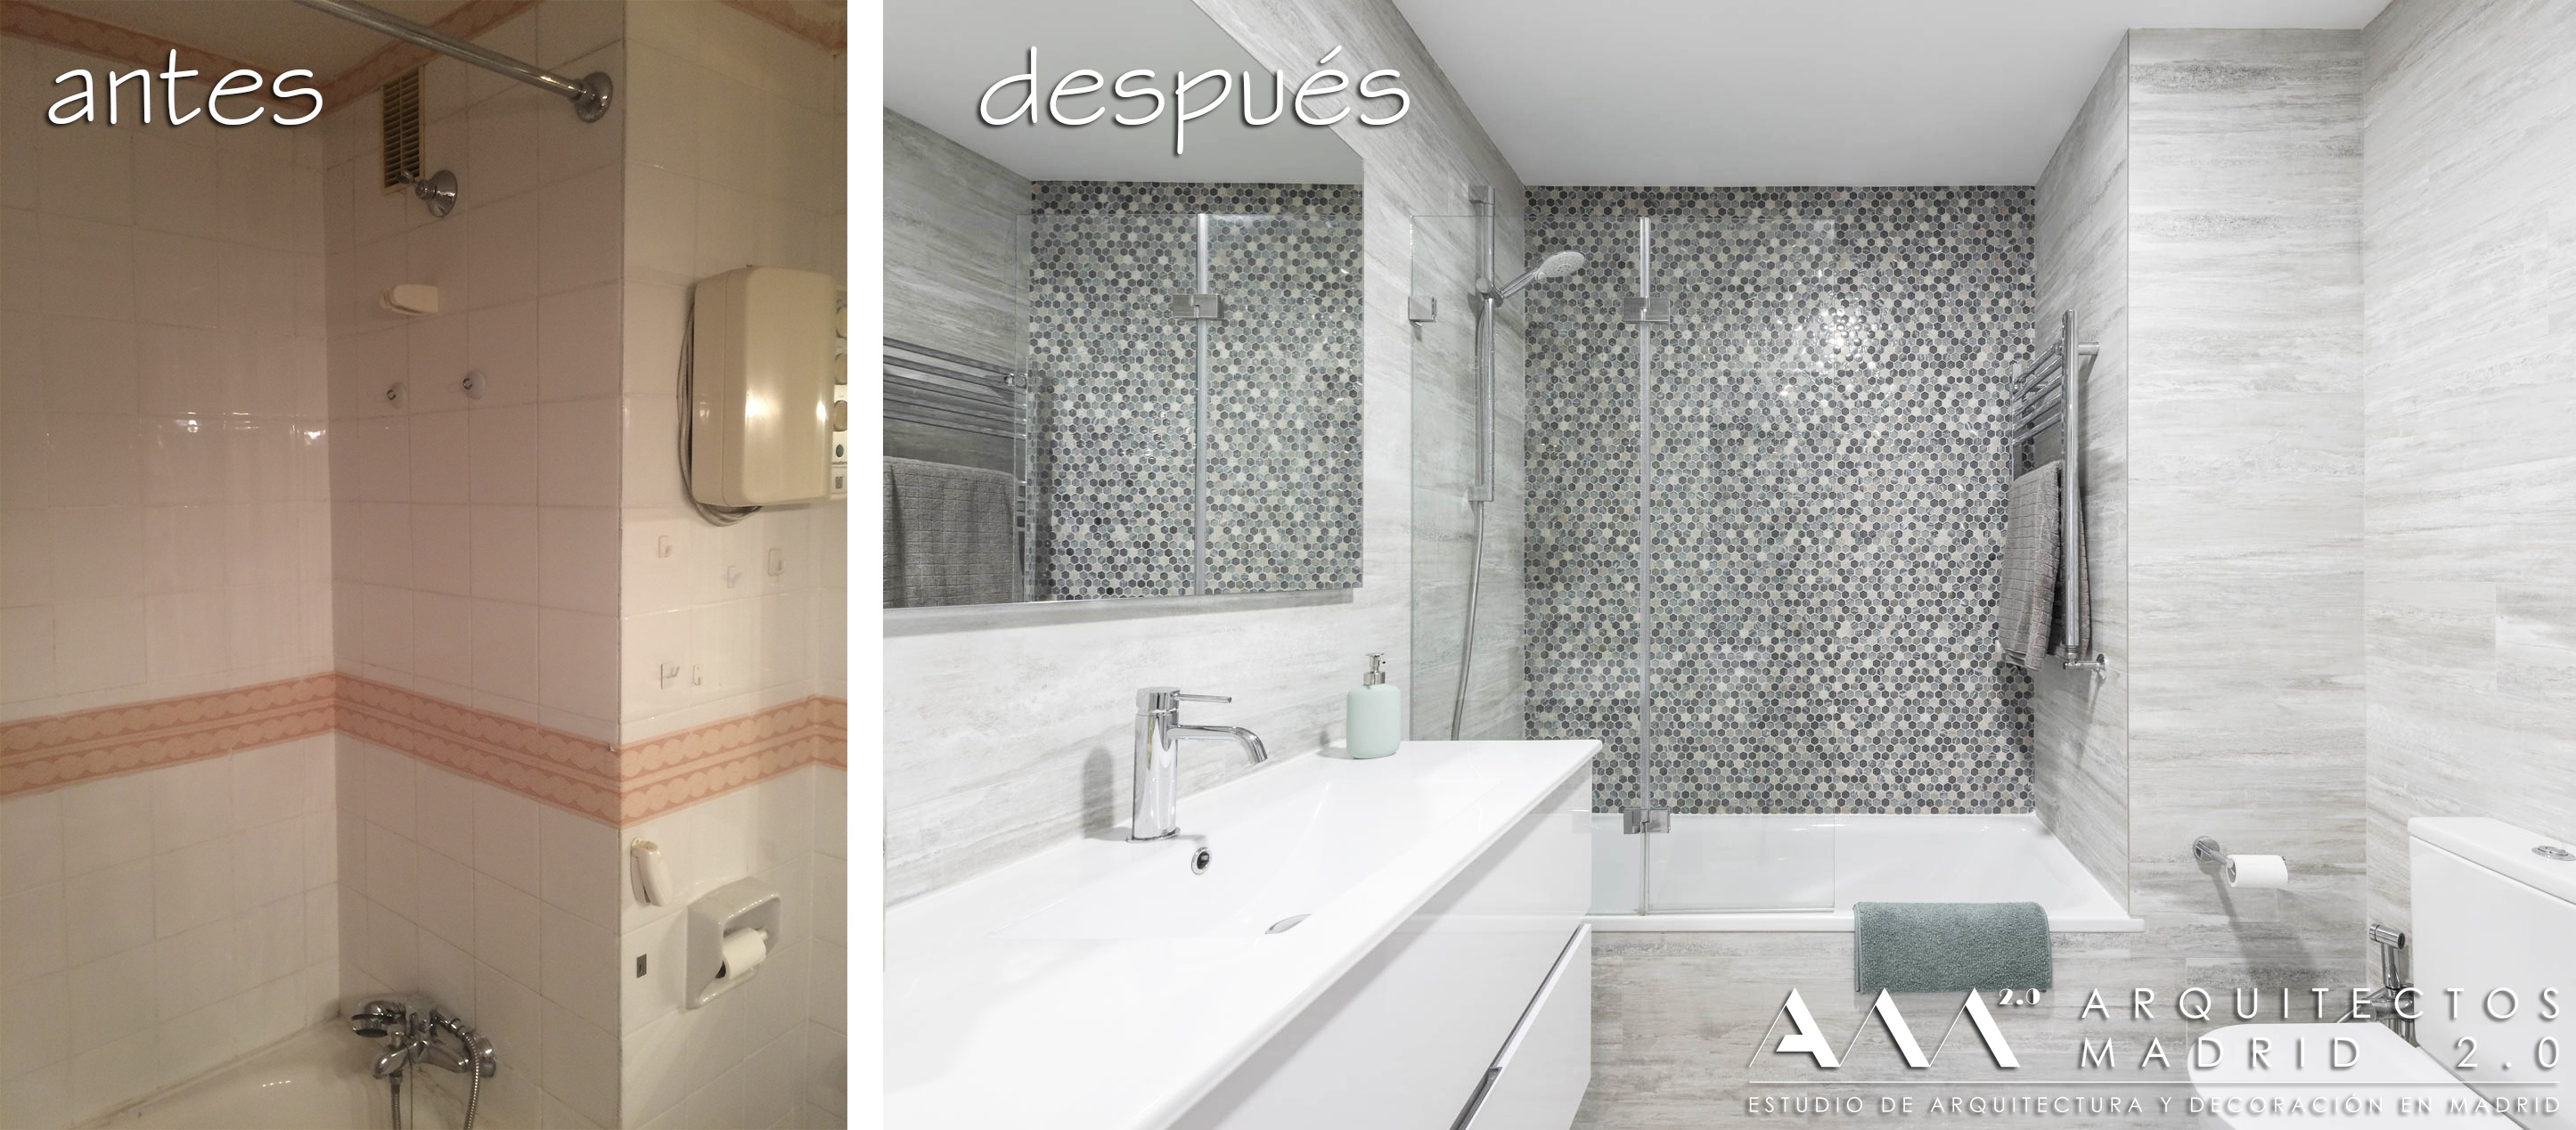 antes-despues-reforma-vivienda-housing-reform-before-after-bathroom